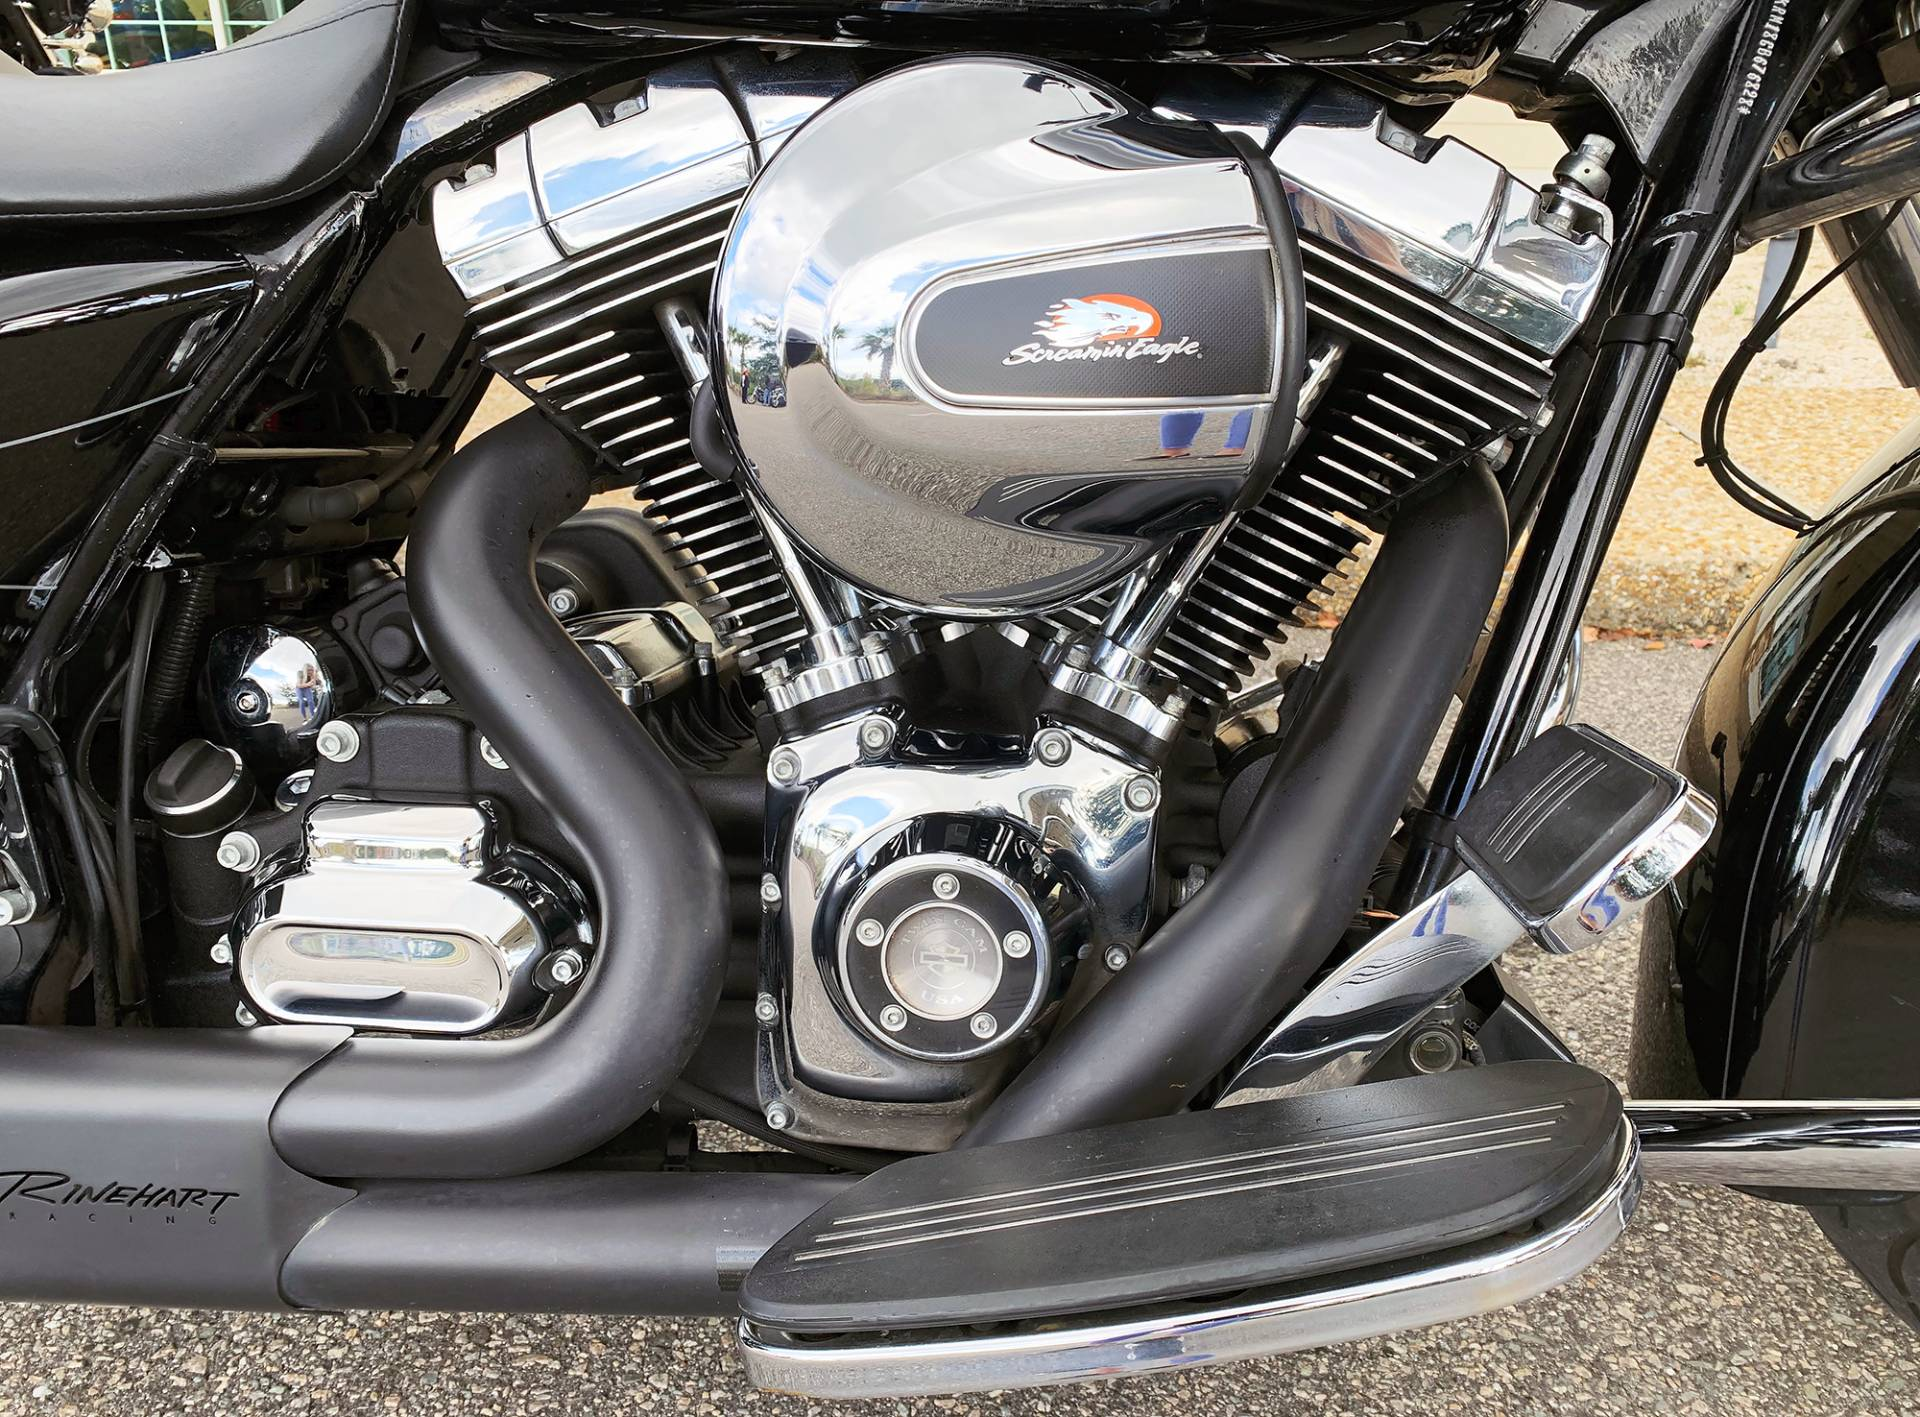 2016 Harley-Davidson Street Glide® Special in Shallotte, North Carolina - Photo 5